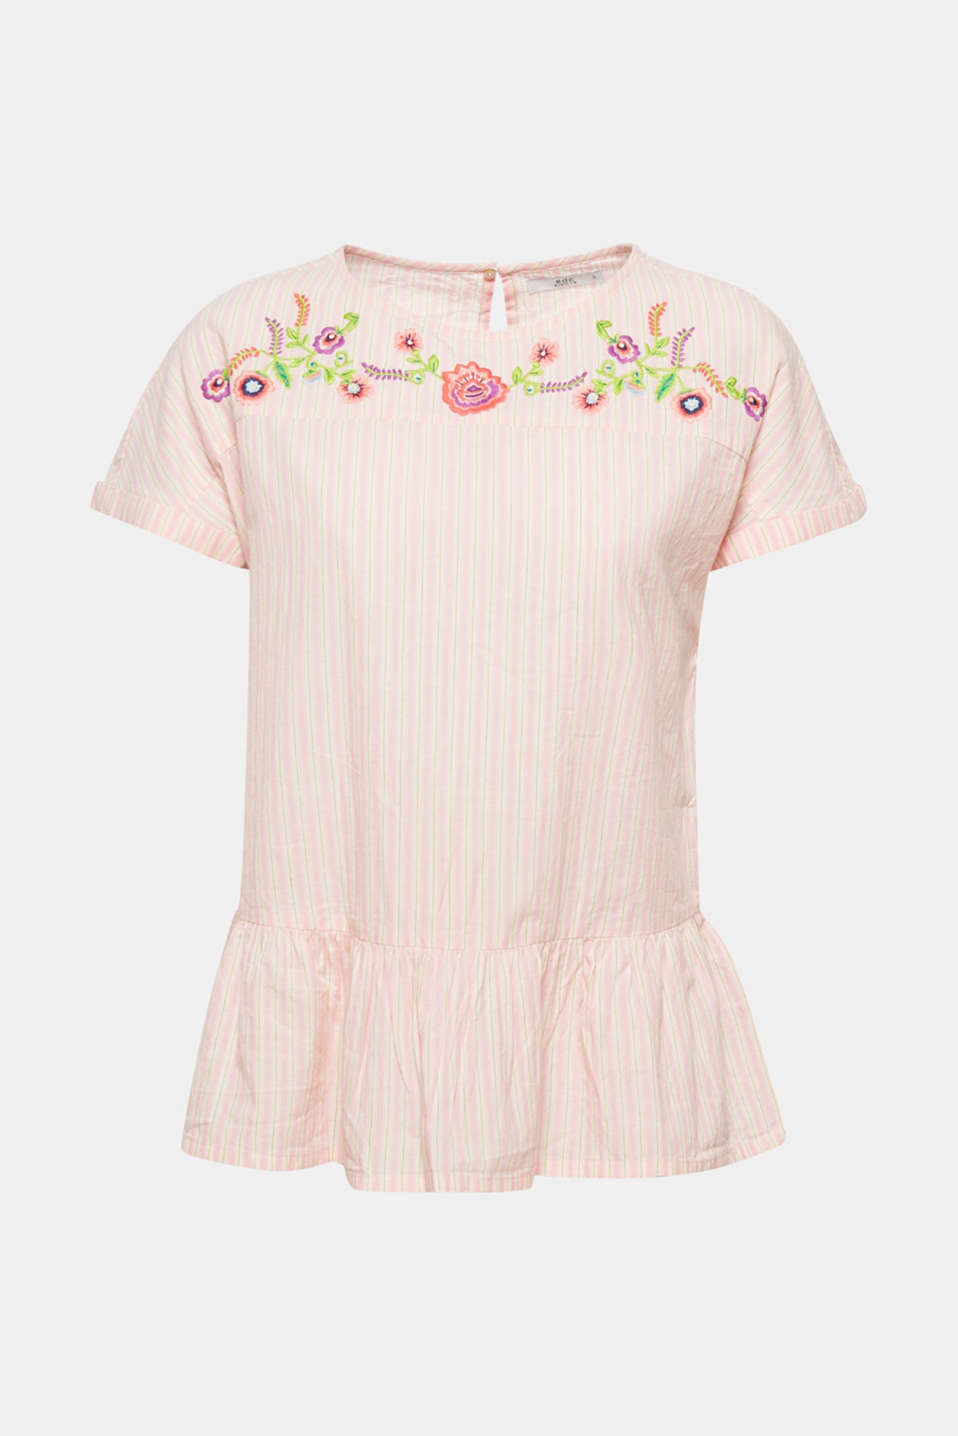 The flounce and floral embroidery enhance this striped pure cotton design with pretty femininity.